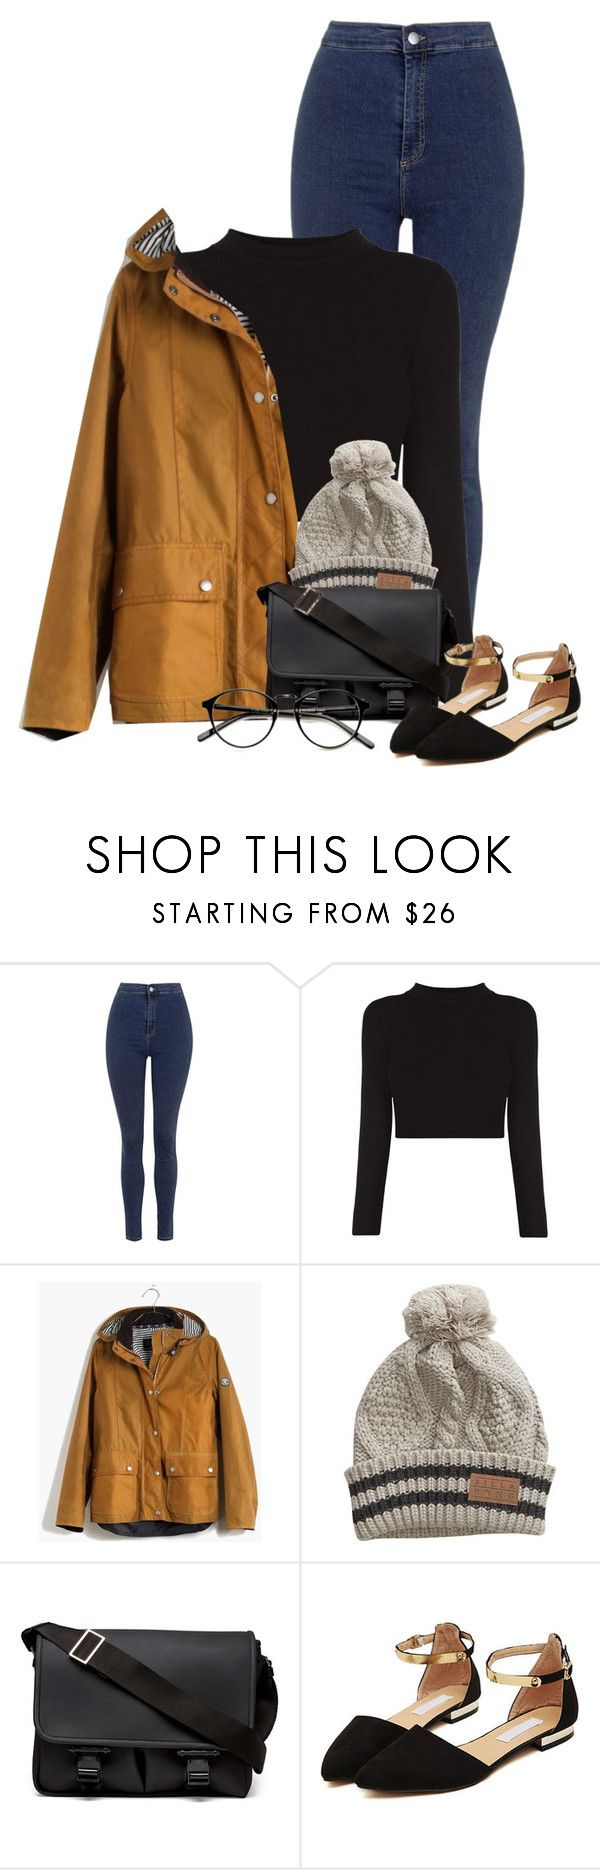 """""""Brielle Amanda Lee(Lawley)"""" by glitterxbieber ❤ liked on Polyvore featuring Topshop, Madewell, Billabong and Givenchy"""